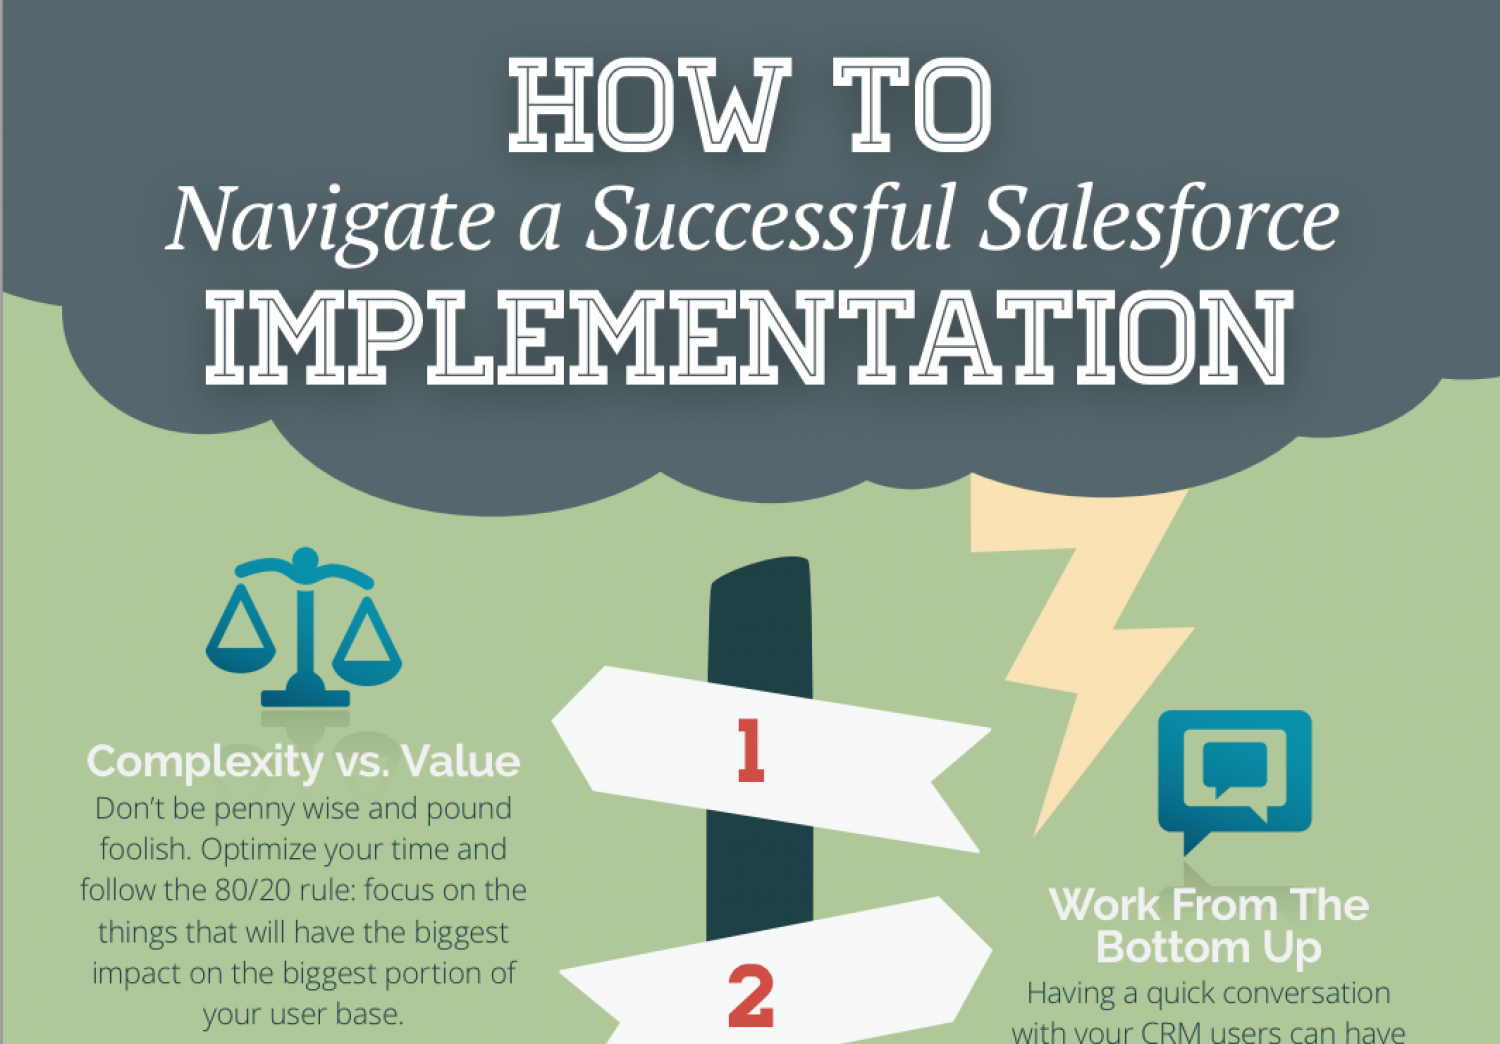 How to Navigate a Successful Salesforce Implementation  Infographic